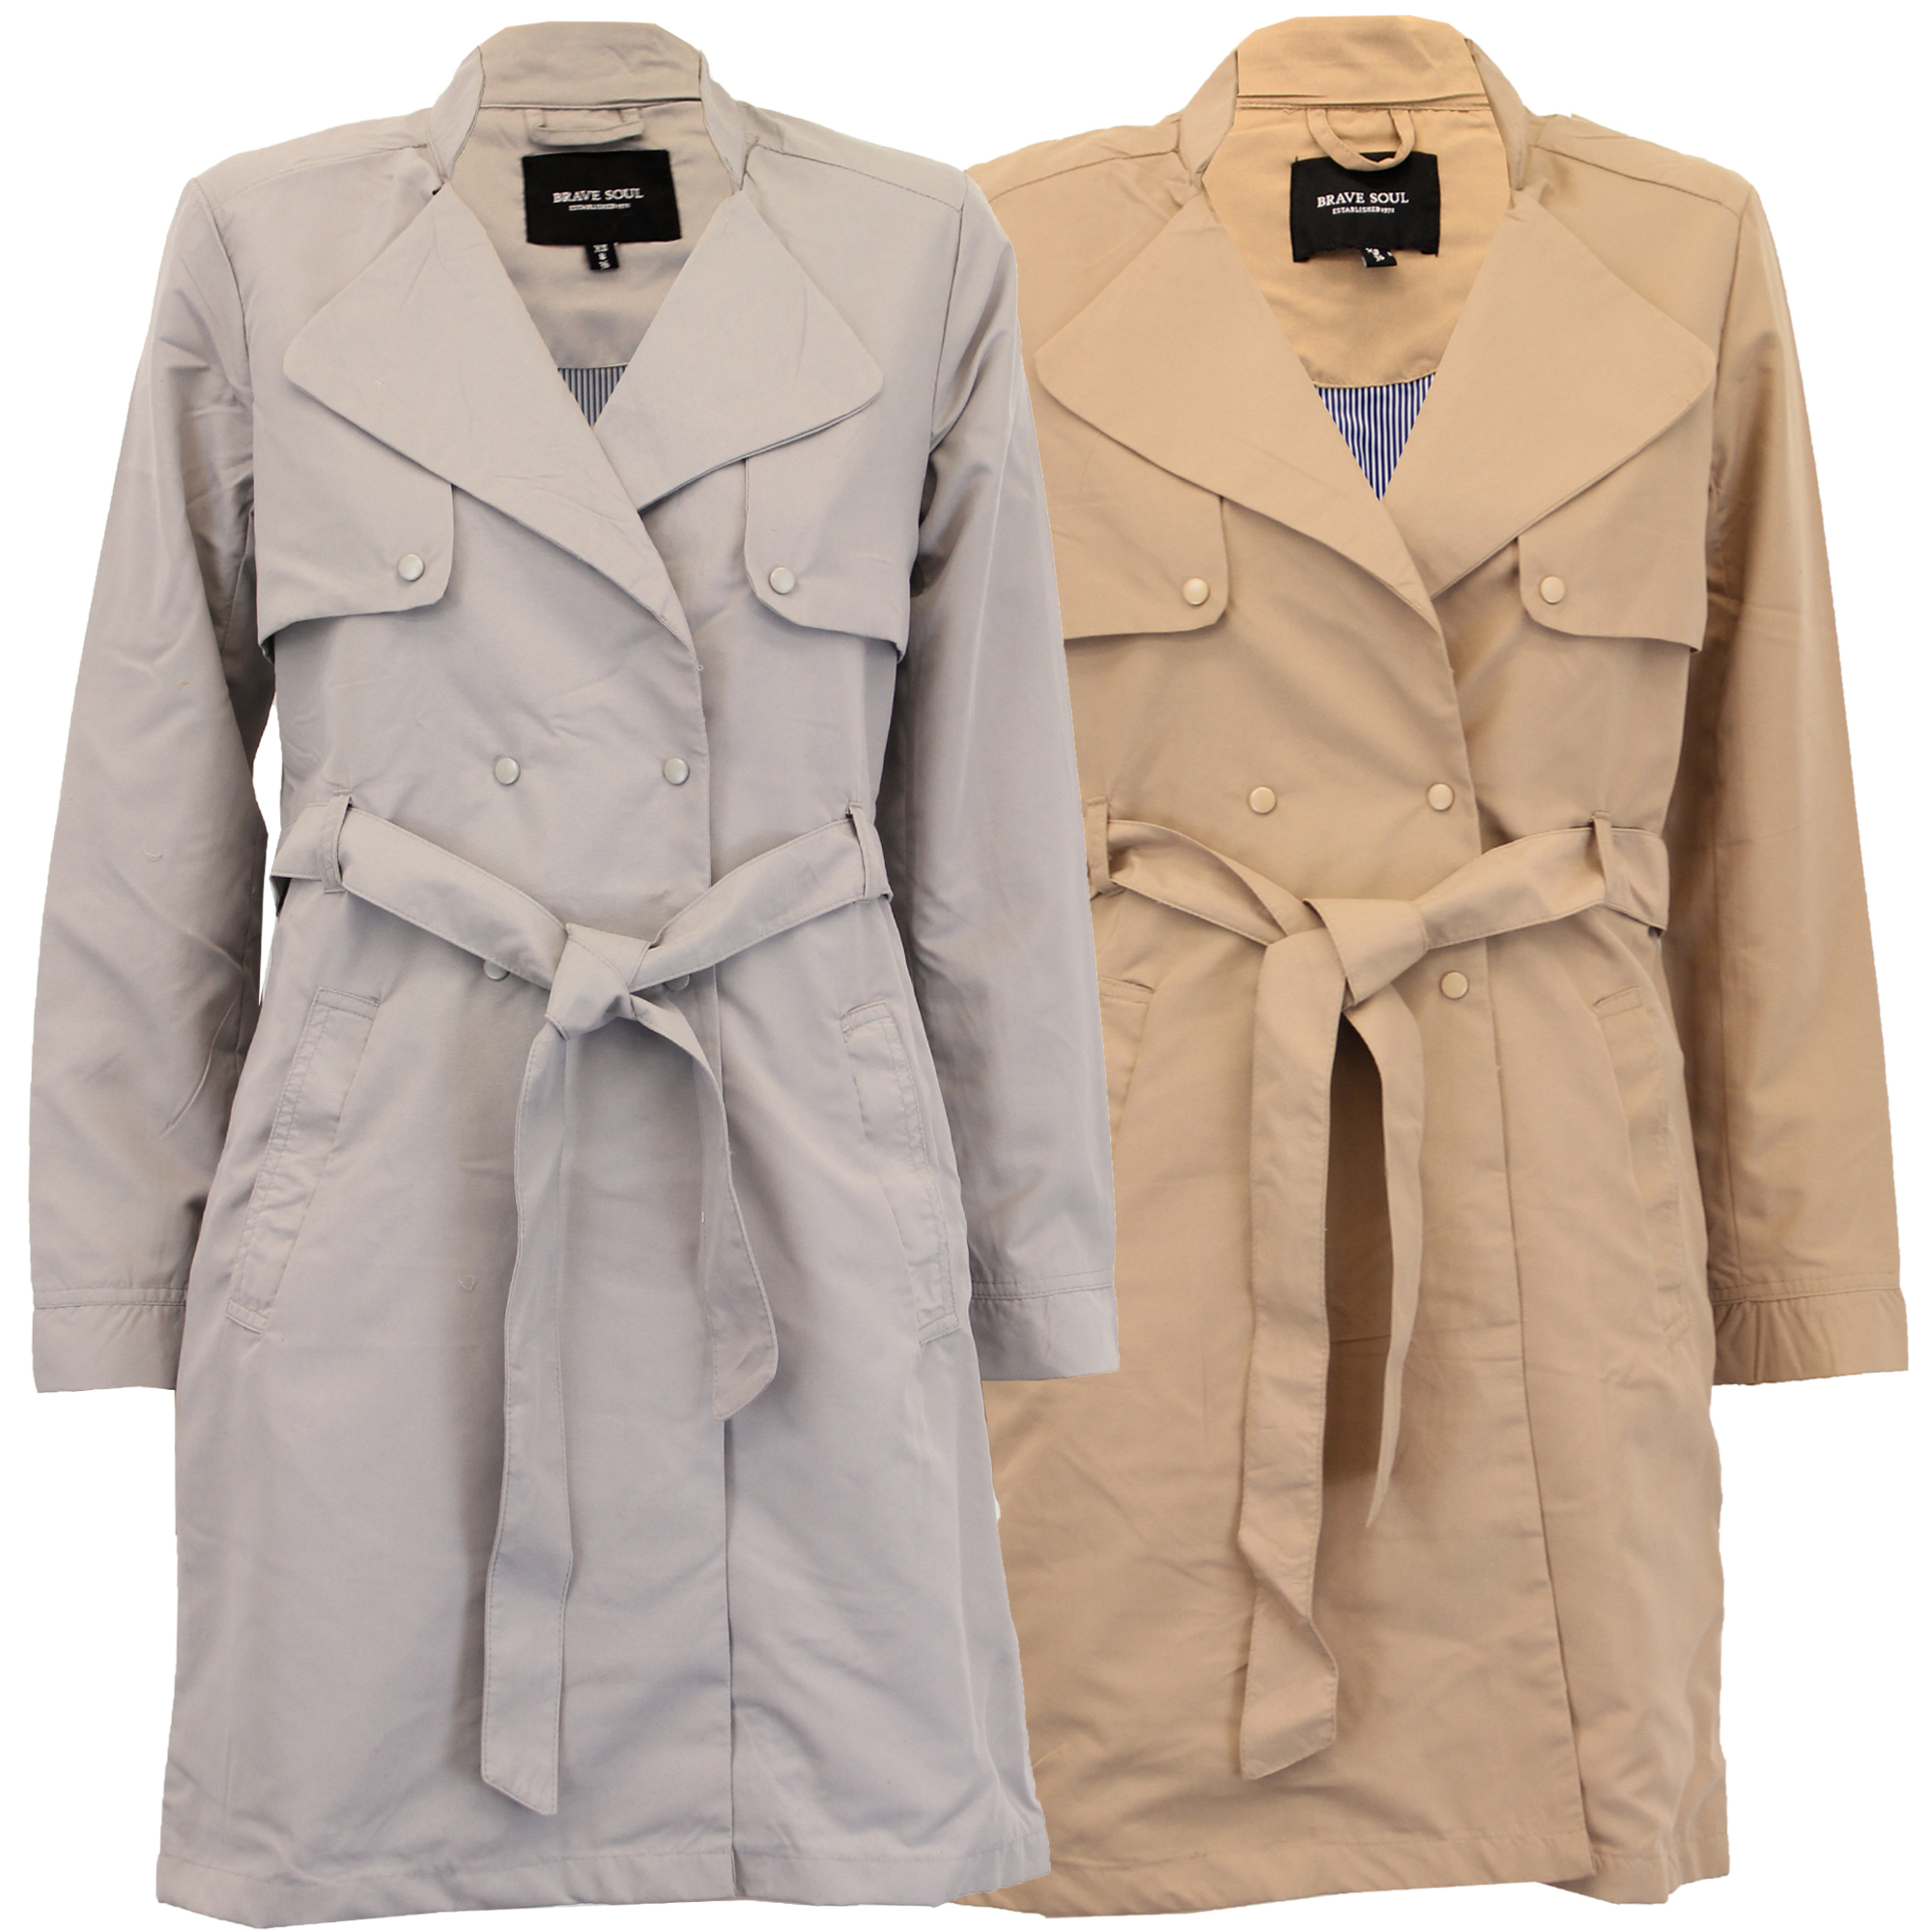 d31cc32e2cb0 Ladies Jacket Brave Soul Womens Trench Mac Coat Double Breasted Belt ...